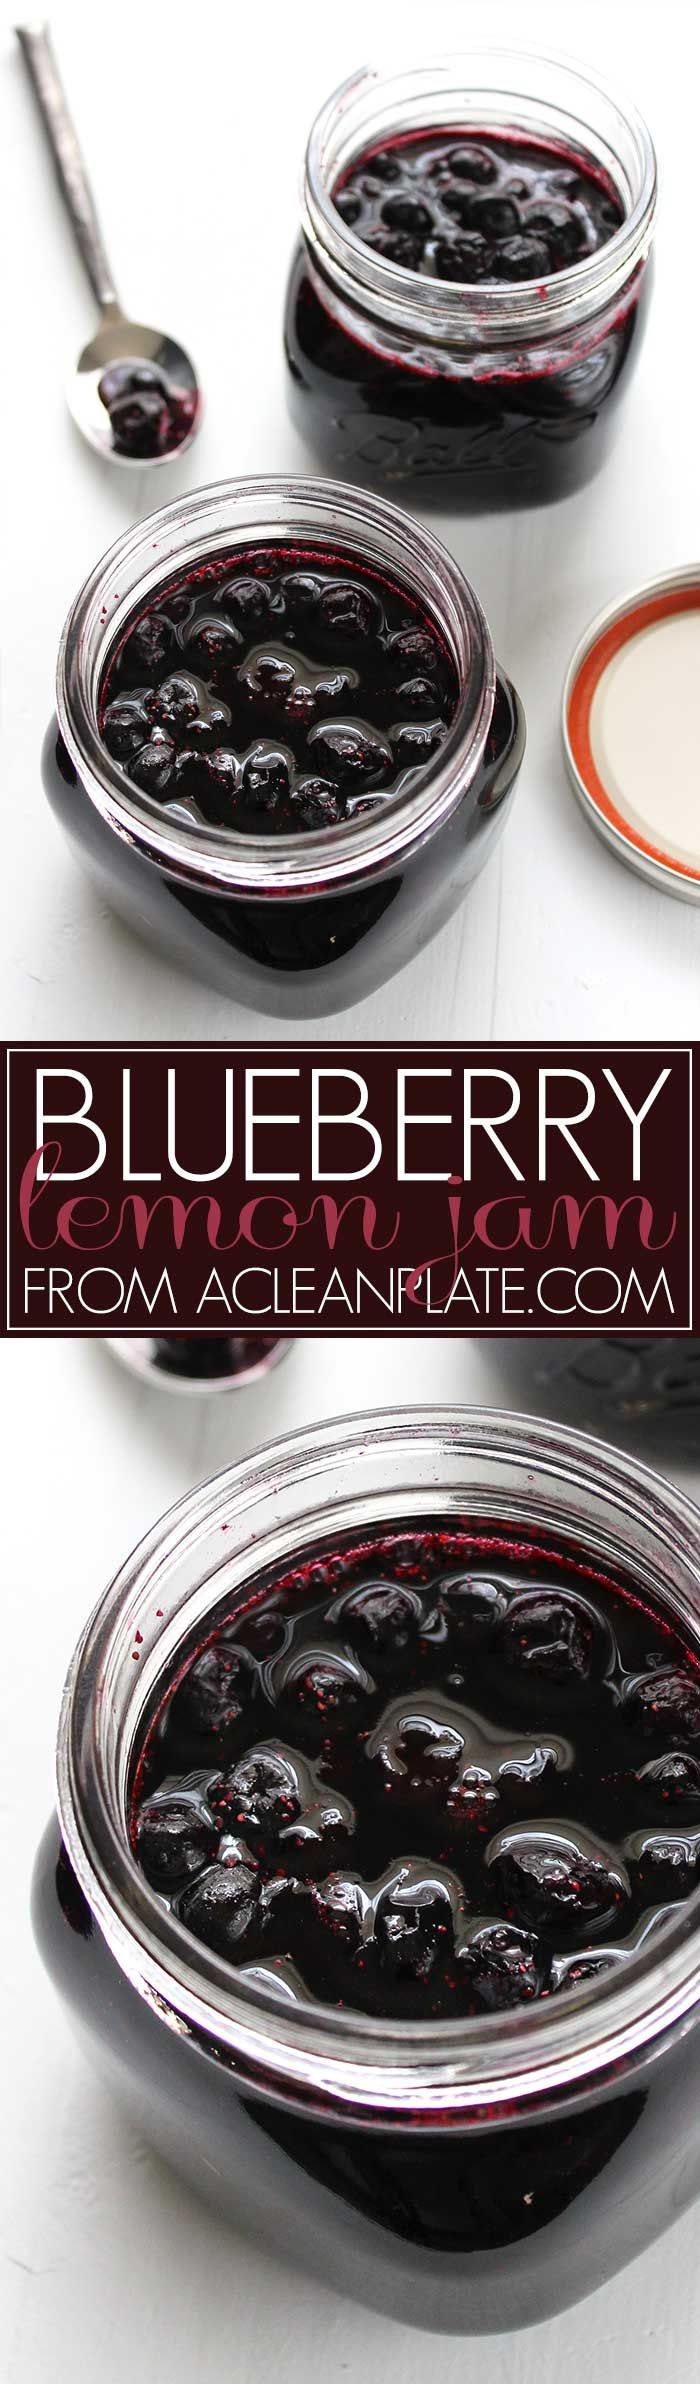 Homemade Lemon-Blueberry Jam recipe from acleanplate.com